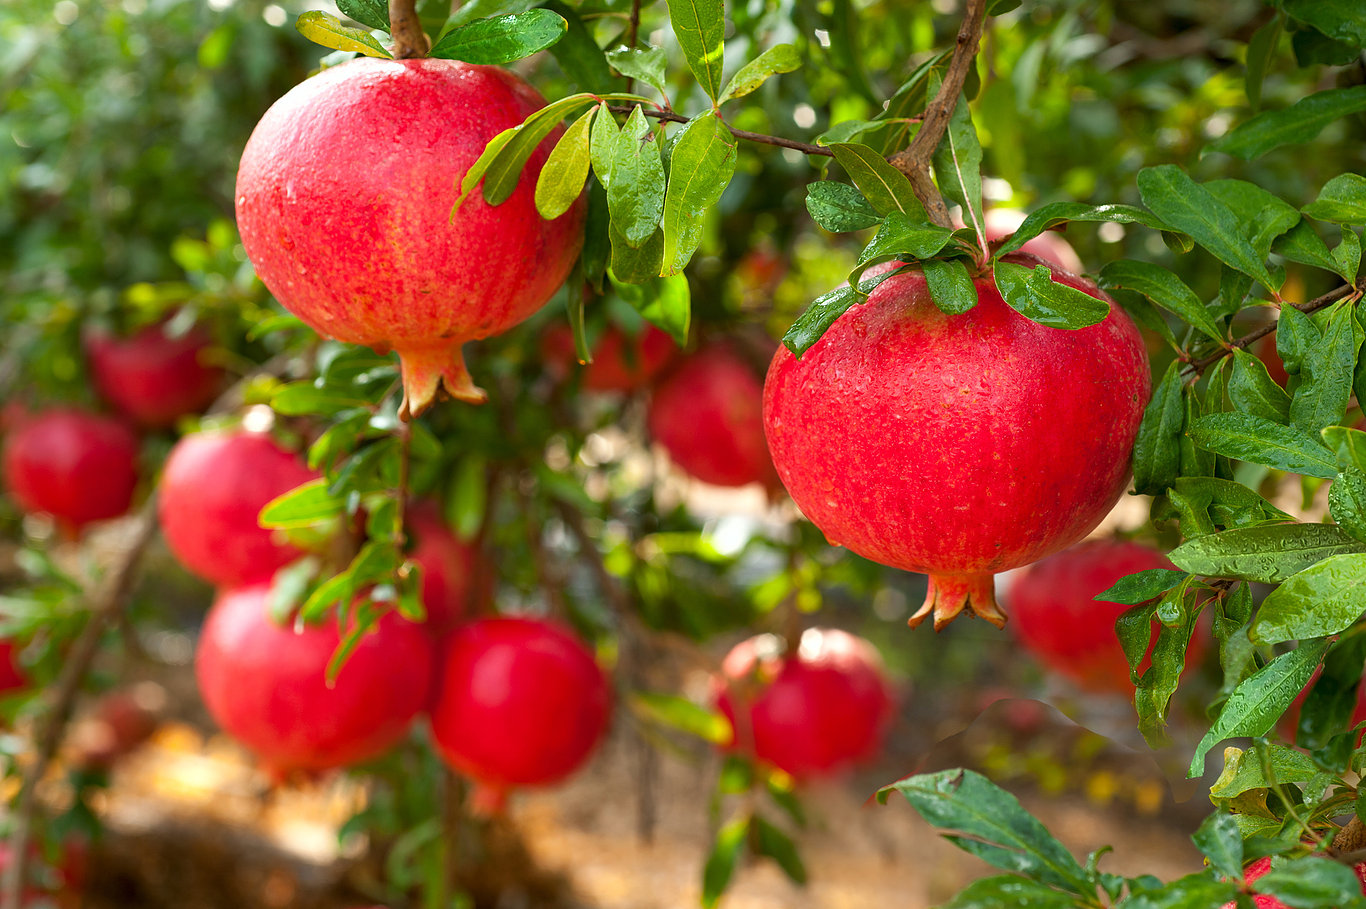 Pomegranates do not contain cholesterol or saturated fats.